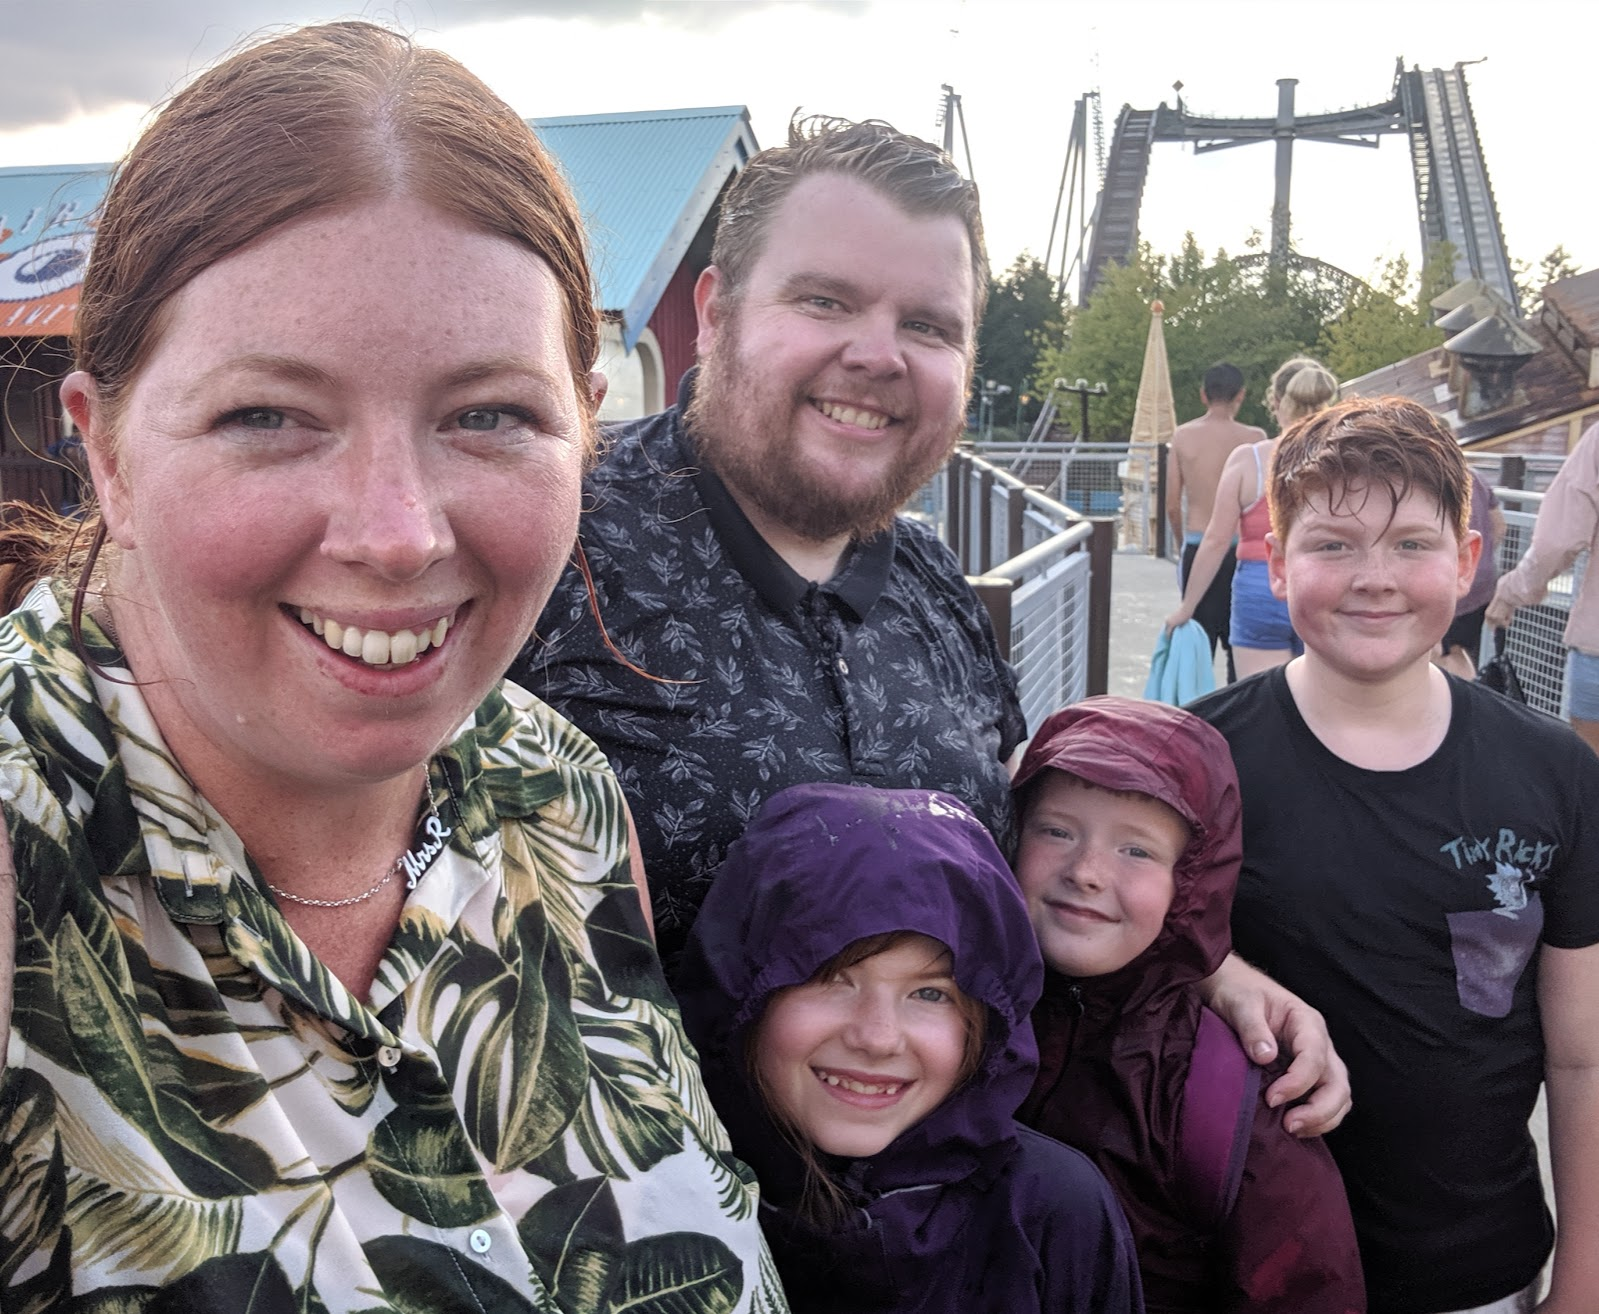 Exploring the Southern Merlin Theme Parks with Tweens  - How wet are we after Tidal Wave at Thorpe Park